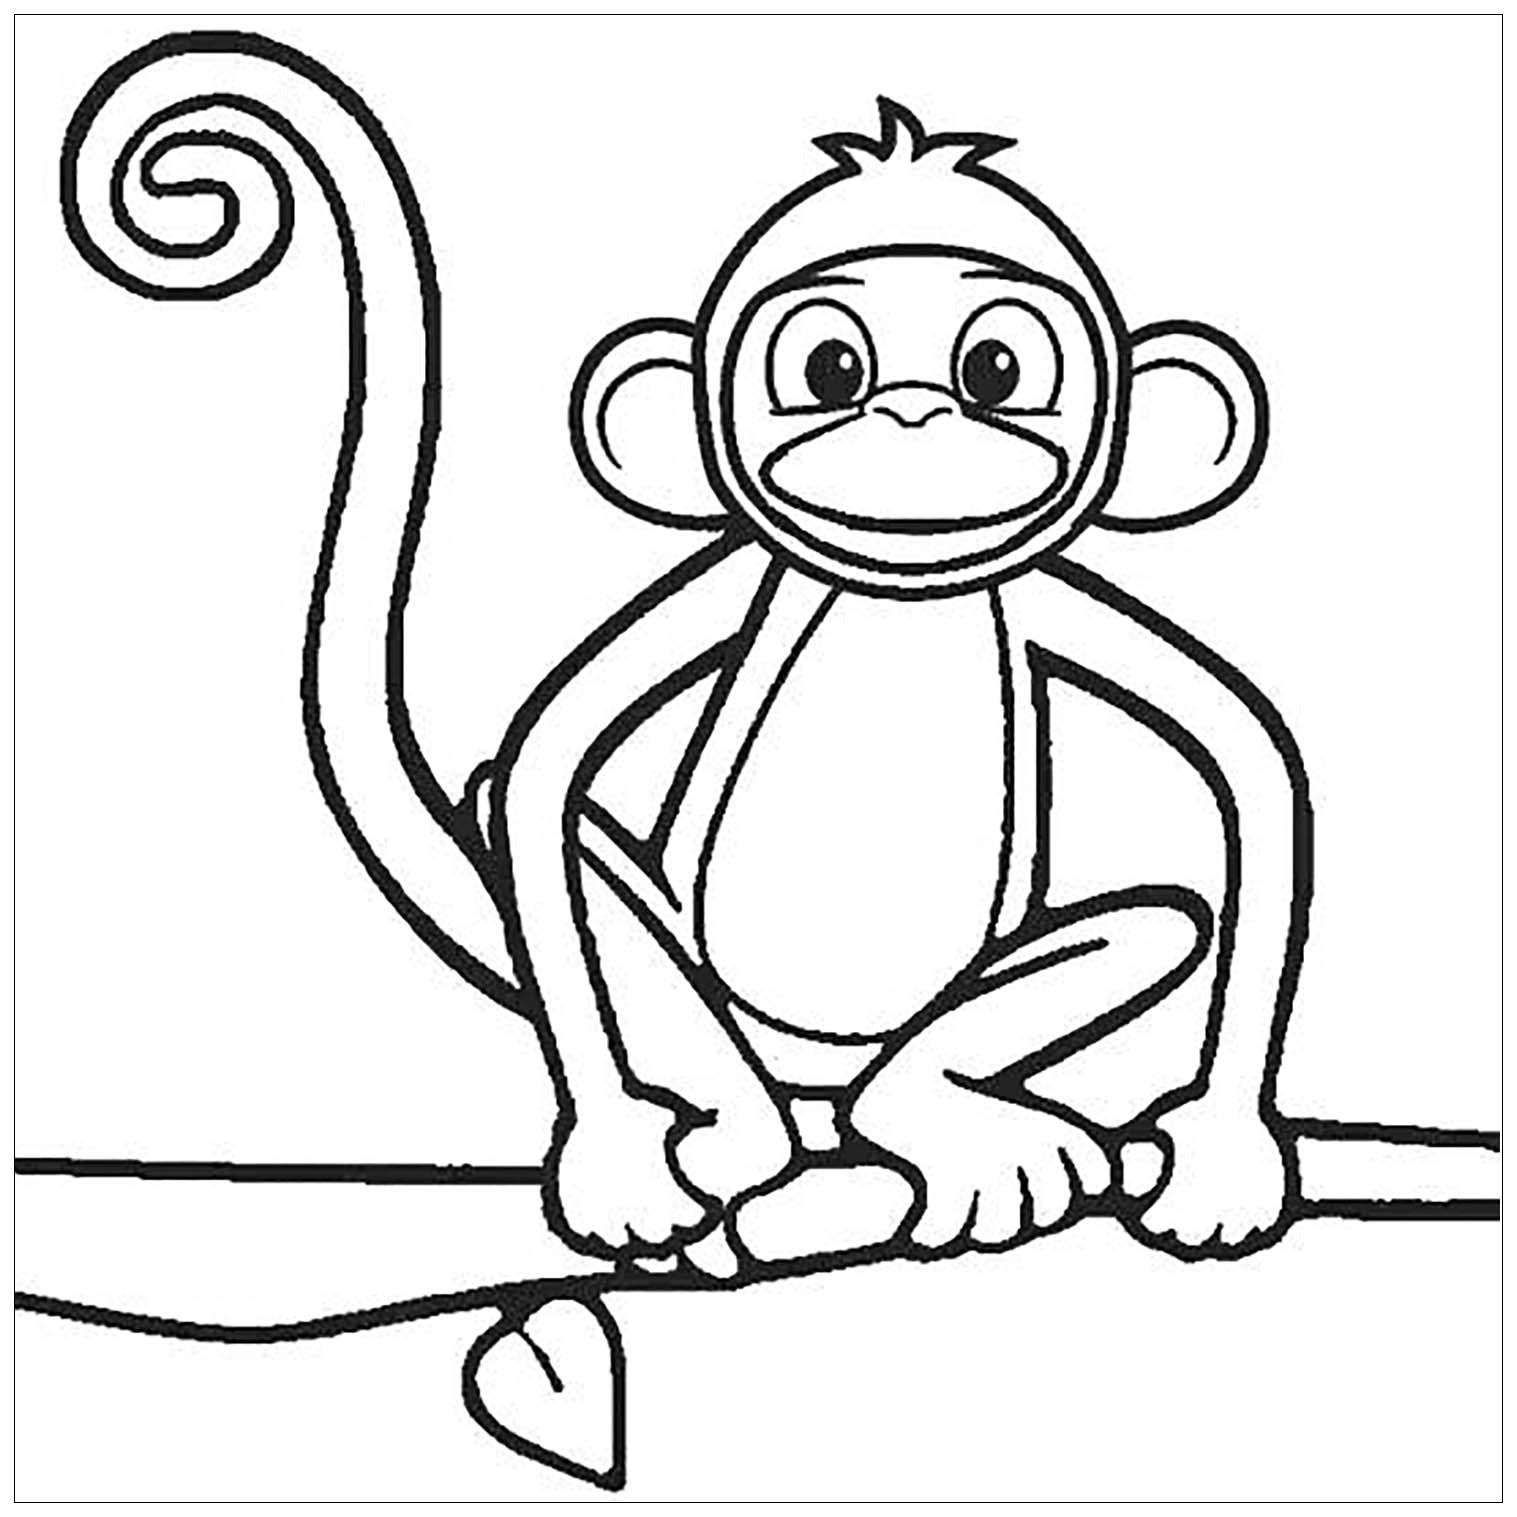 chimpanzee pictures to print cute baby monkey coloring pages printables coloring home pictures chimpanzee print to